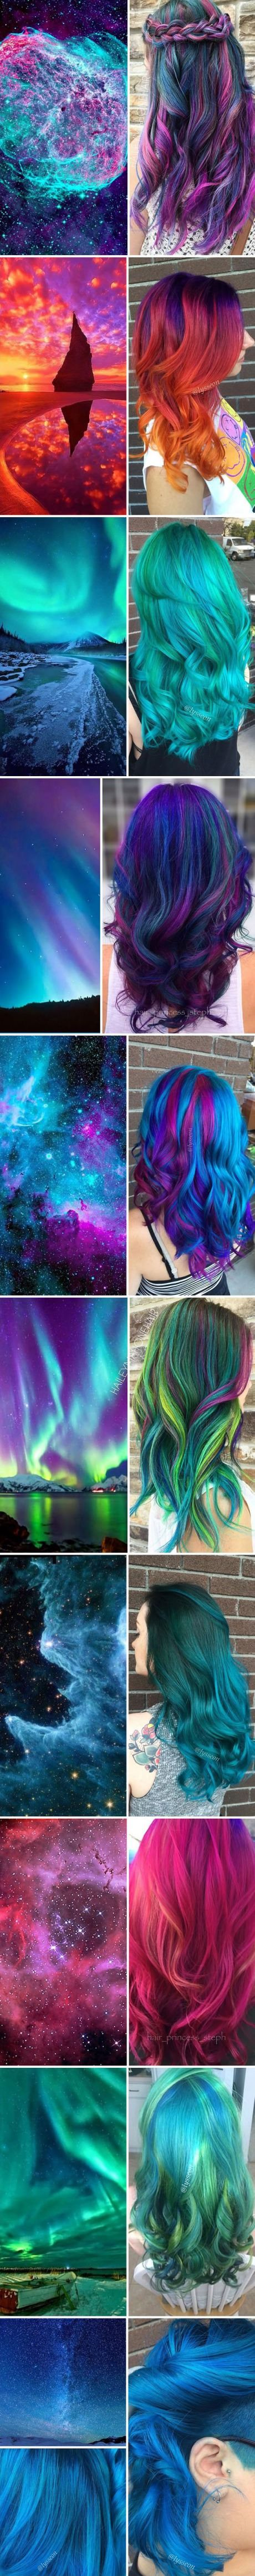 best hair topic fashion images on pinterest colourful hair